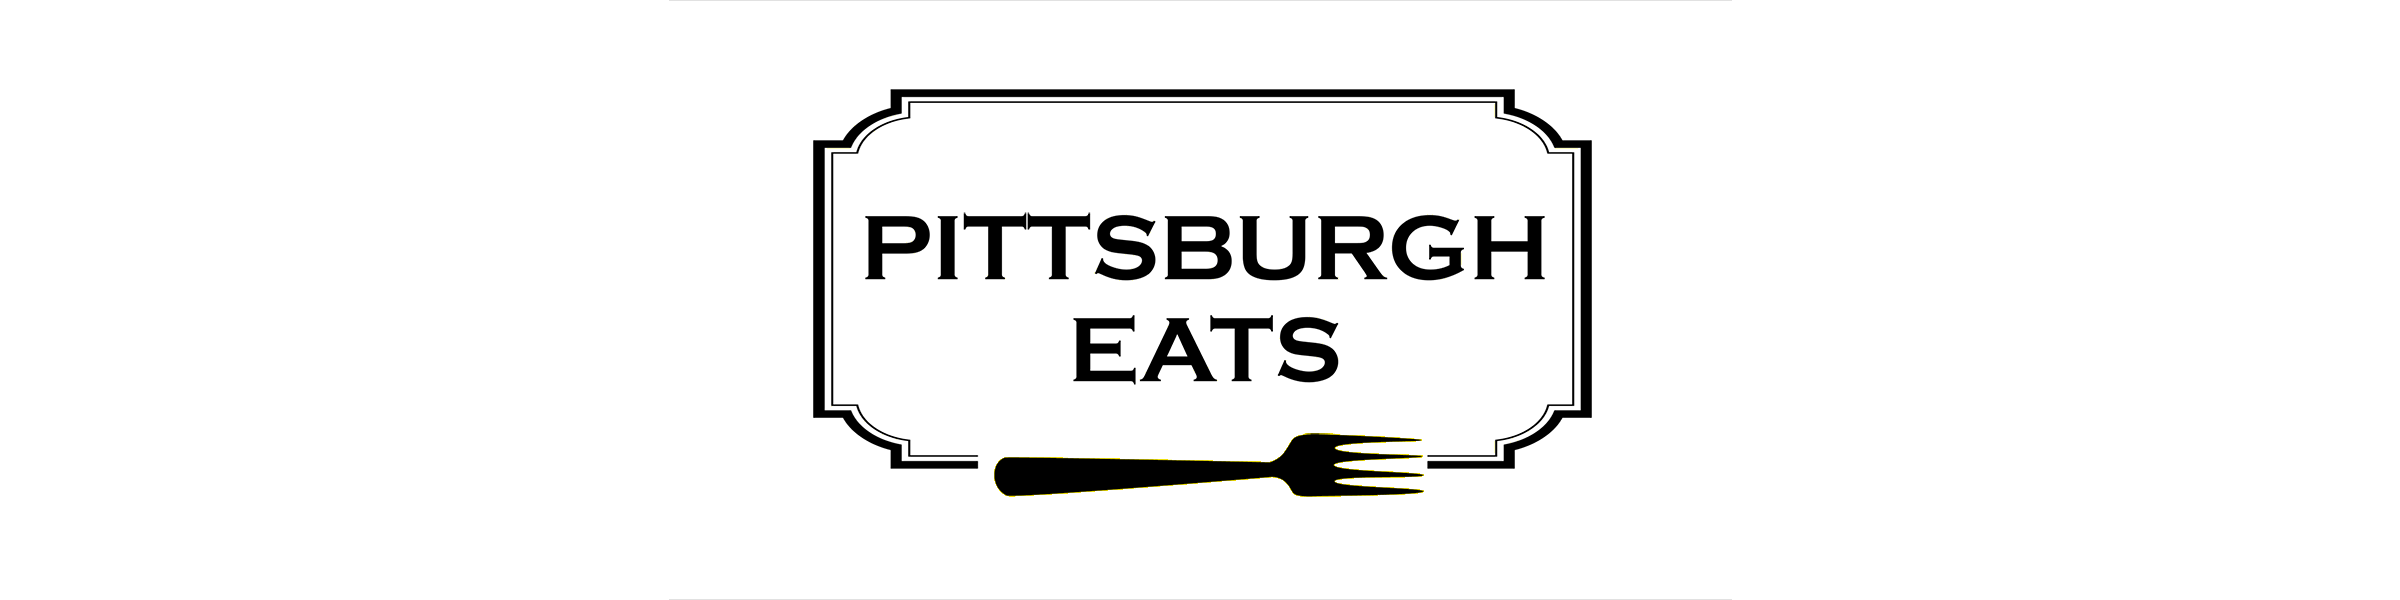 Pittsburgh Eats